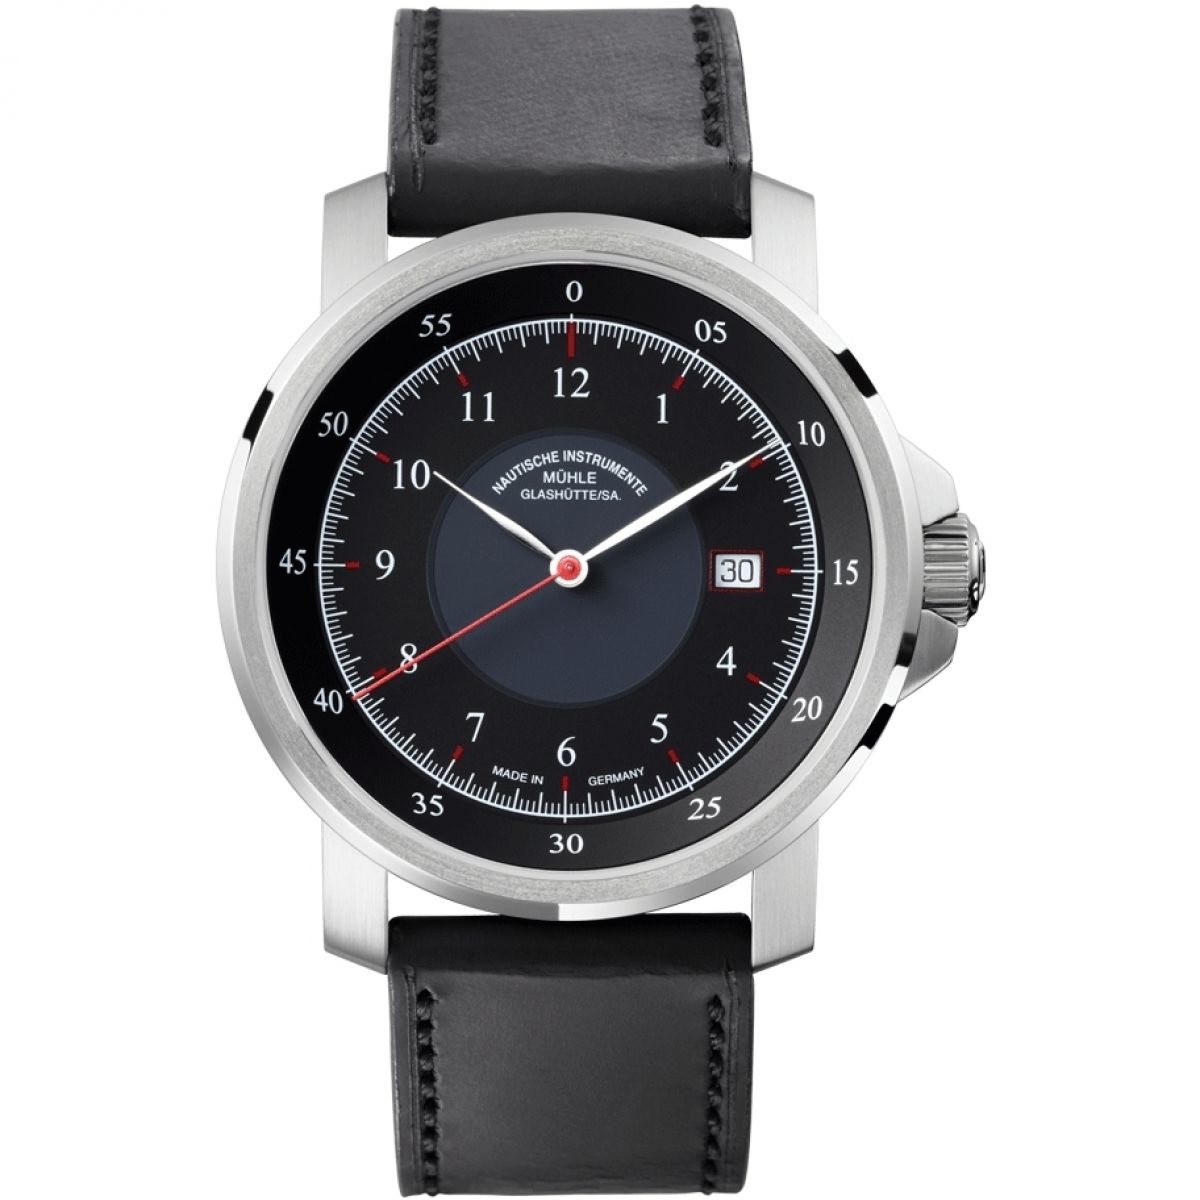 Gents muhle glashutte m29 classic watch m1 25 53 lb for Muhle watches